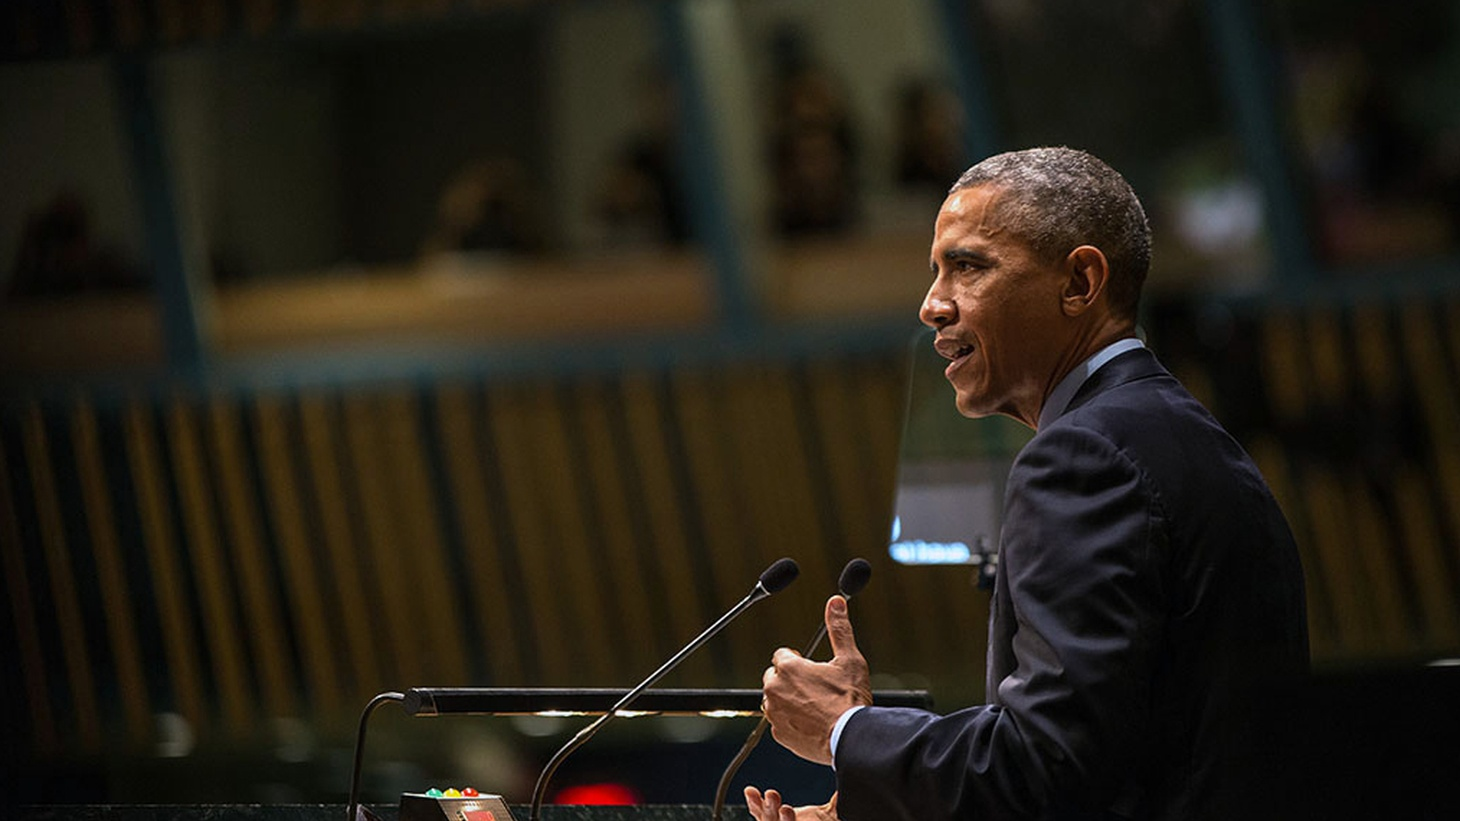 President Obama gave his final address to the UN General Assembly Tuesday. With the conflict in Syria still unresolved and millions displaced, what will Obama's foreign policy legacy be?